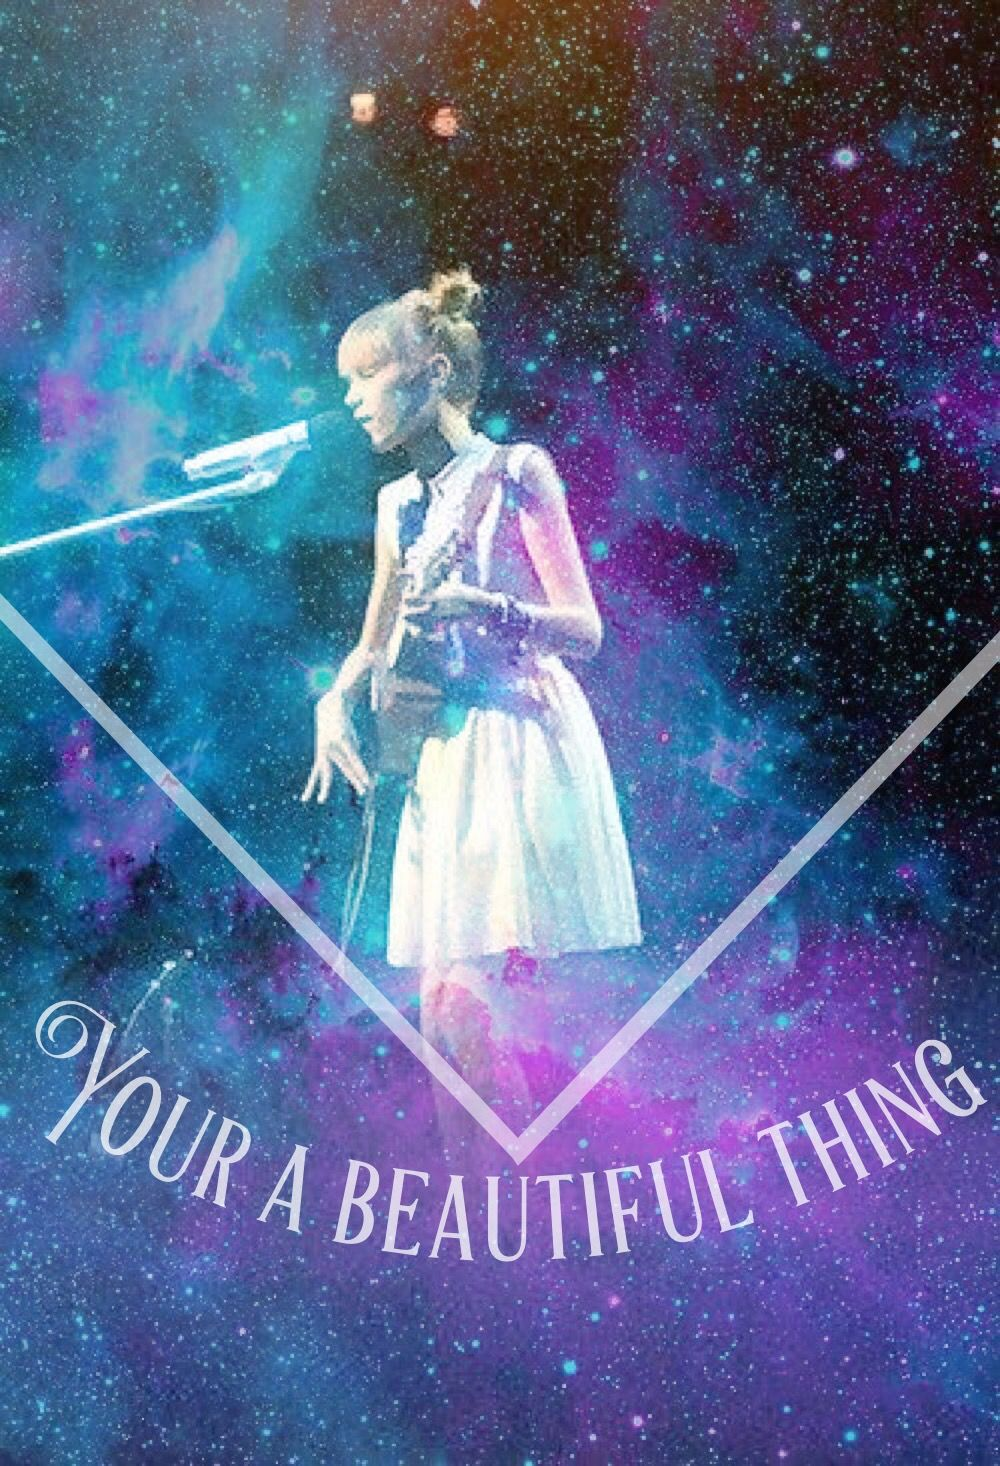 beautiful thing by grace vanderwaal    i like this picture